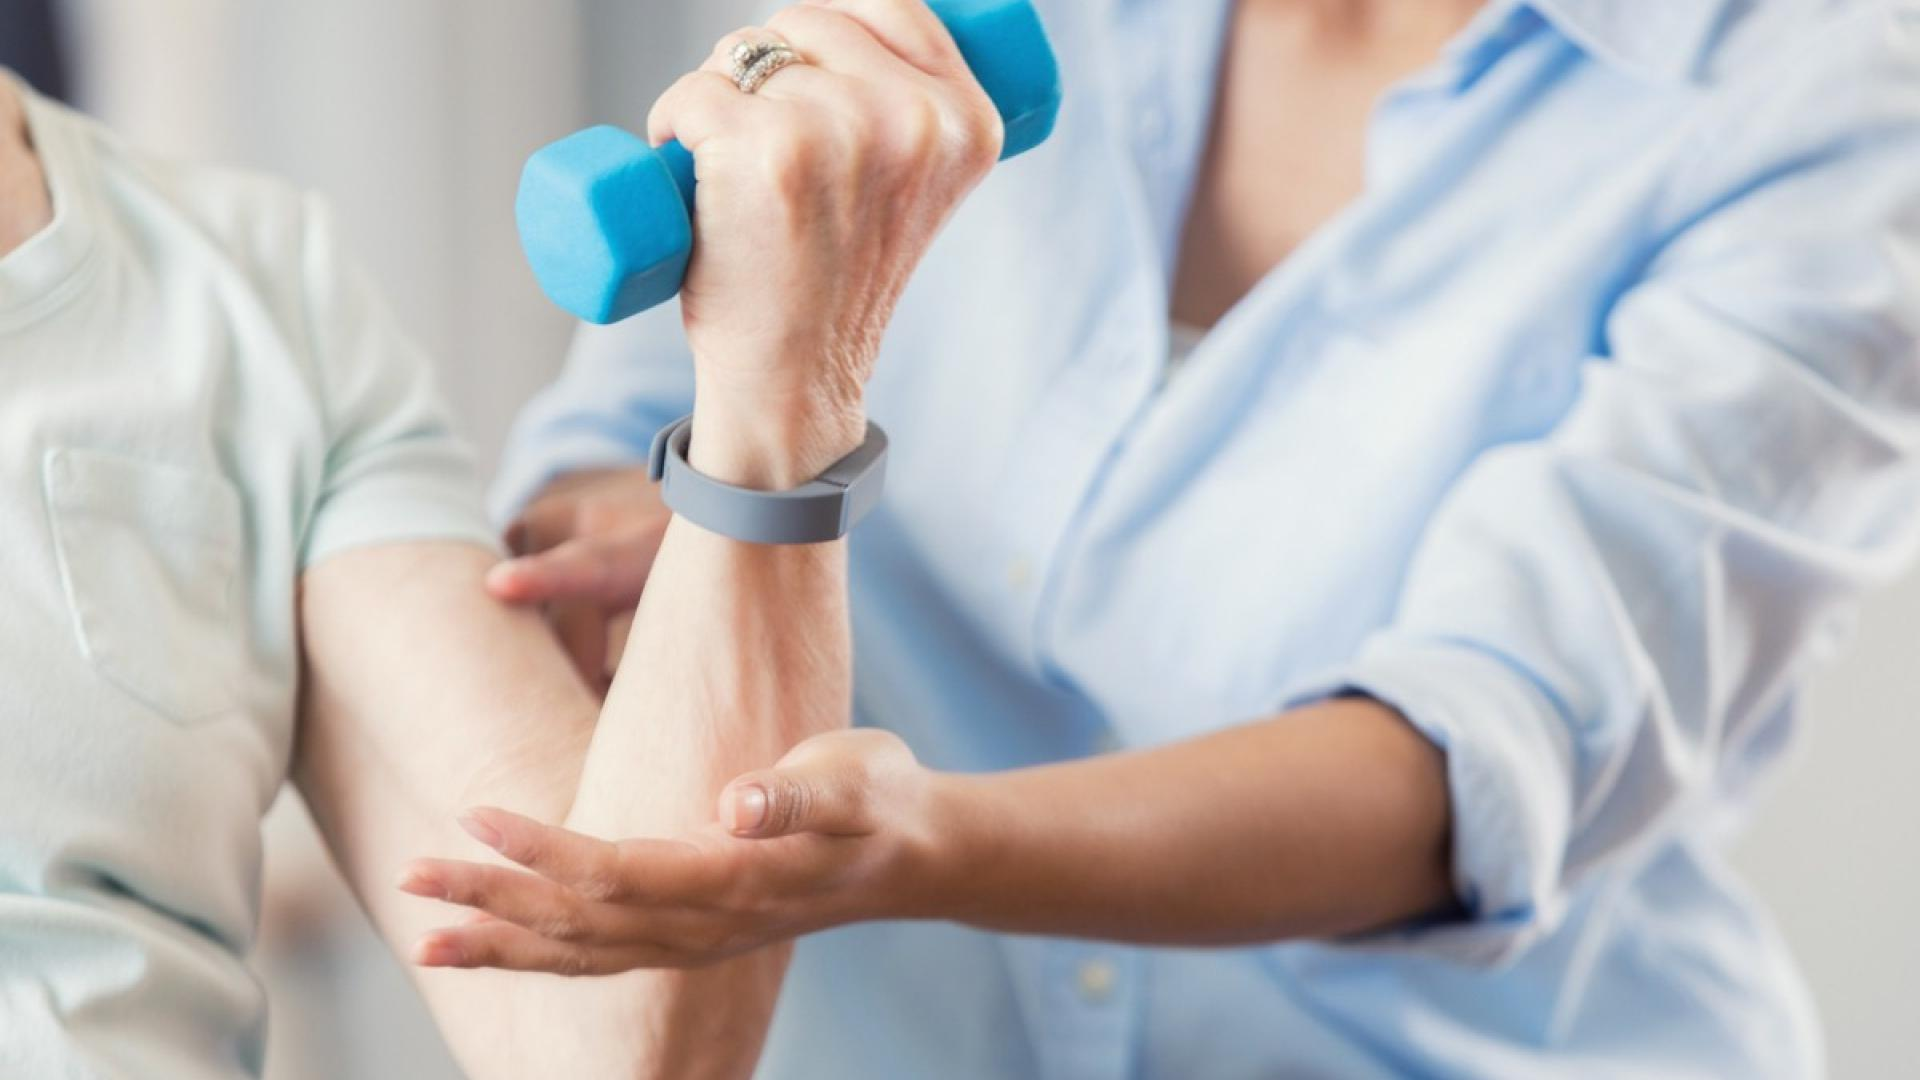 Develop muscle strength 'for better quality of life in old age and to live longer'